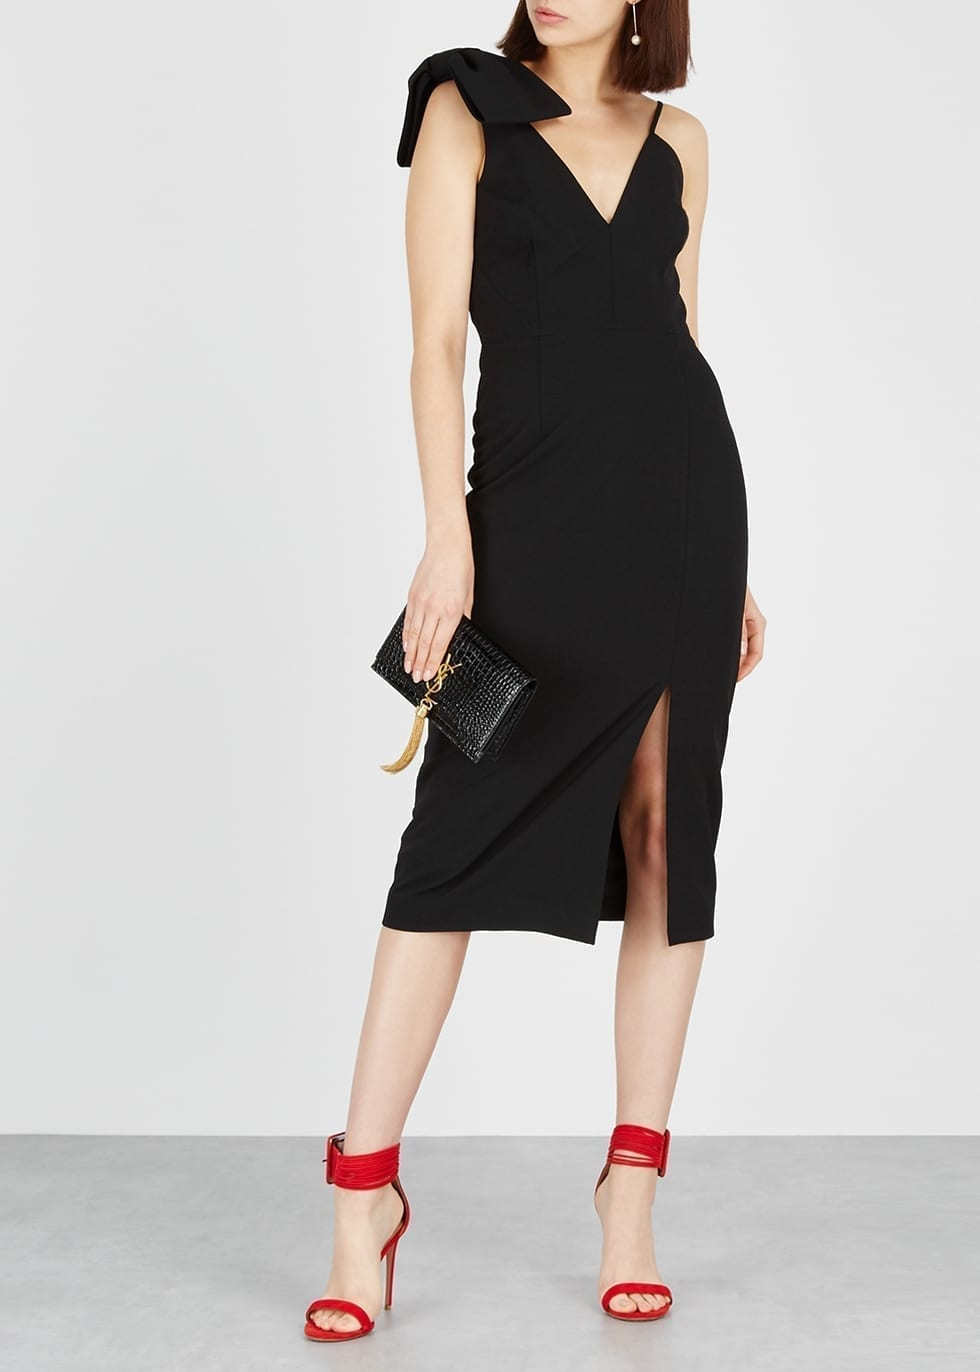 REBECCA VALLANCE Love Bow-embellished Cady Midi Black Dress